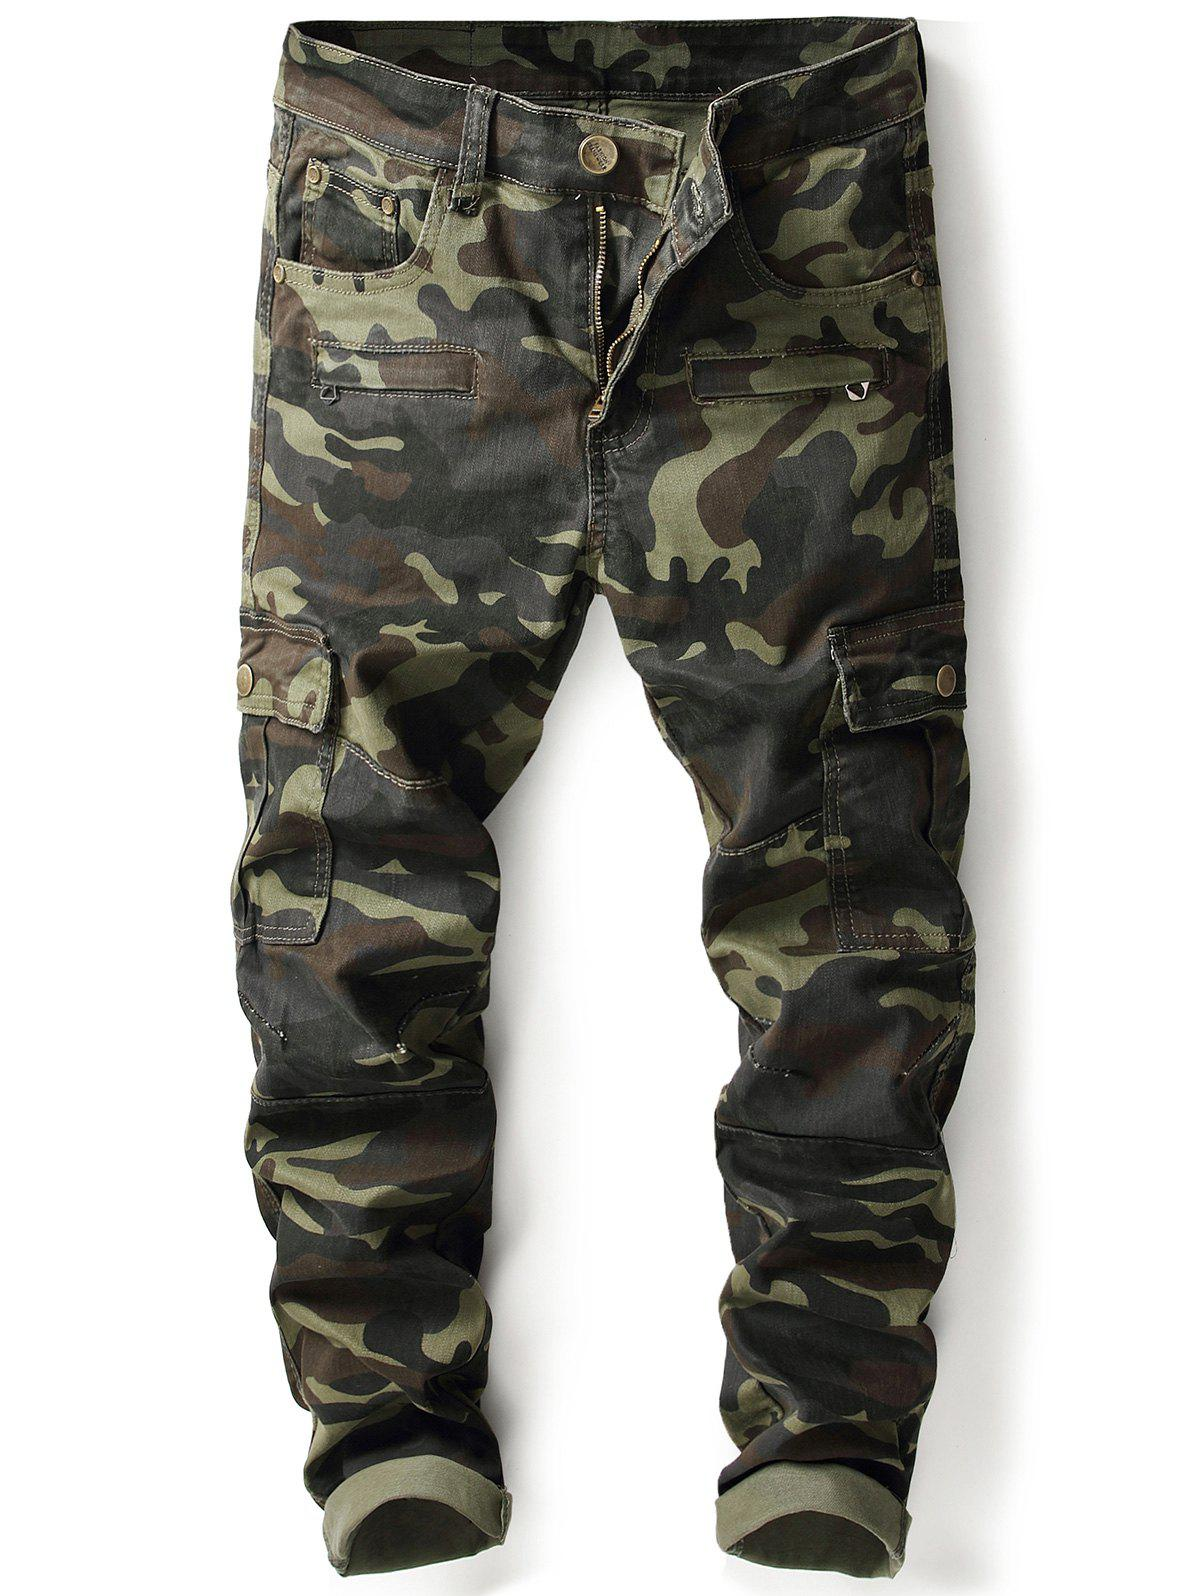 Zip Pockets Camouflage Cargo Pants - ARMY GREEN CAMOUFLAGE 38